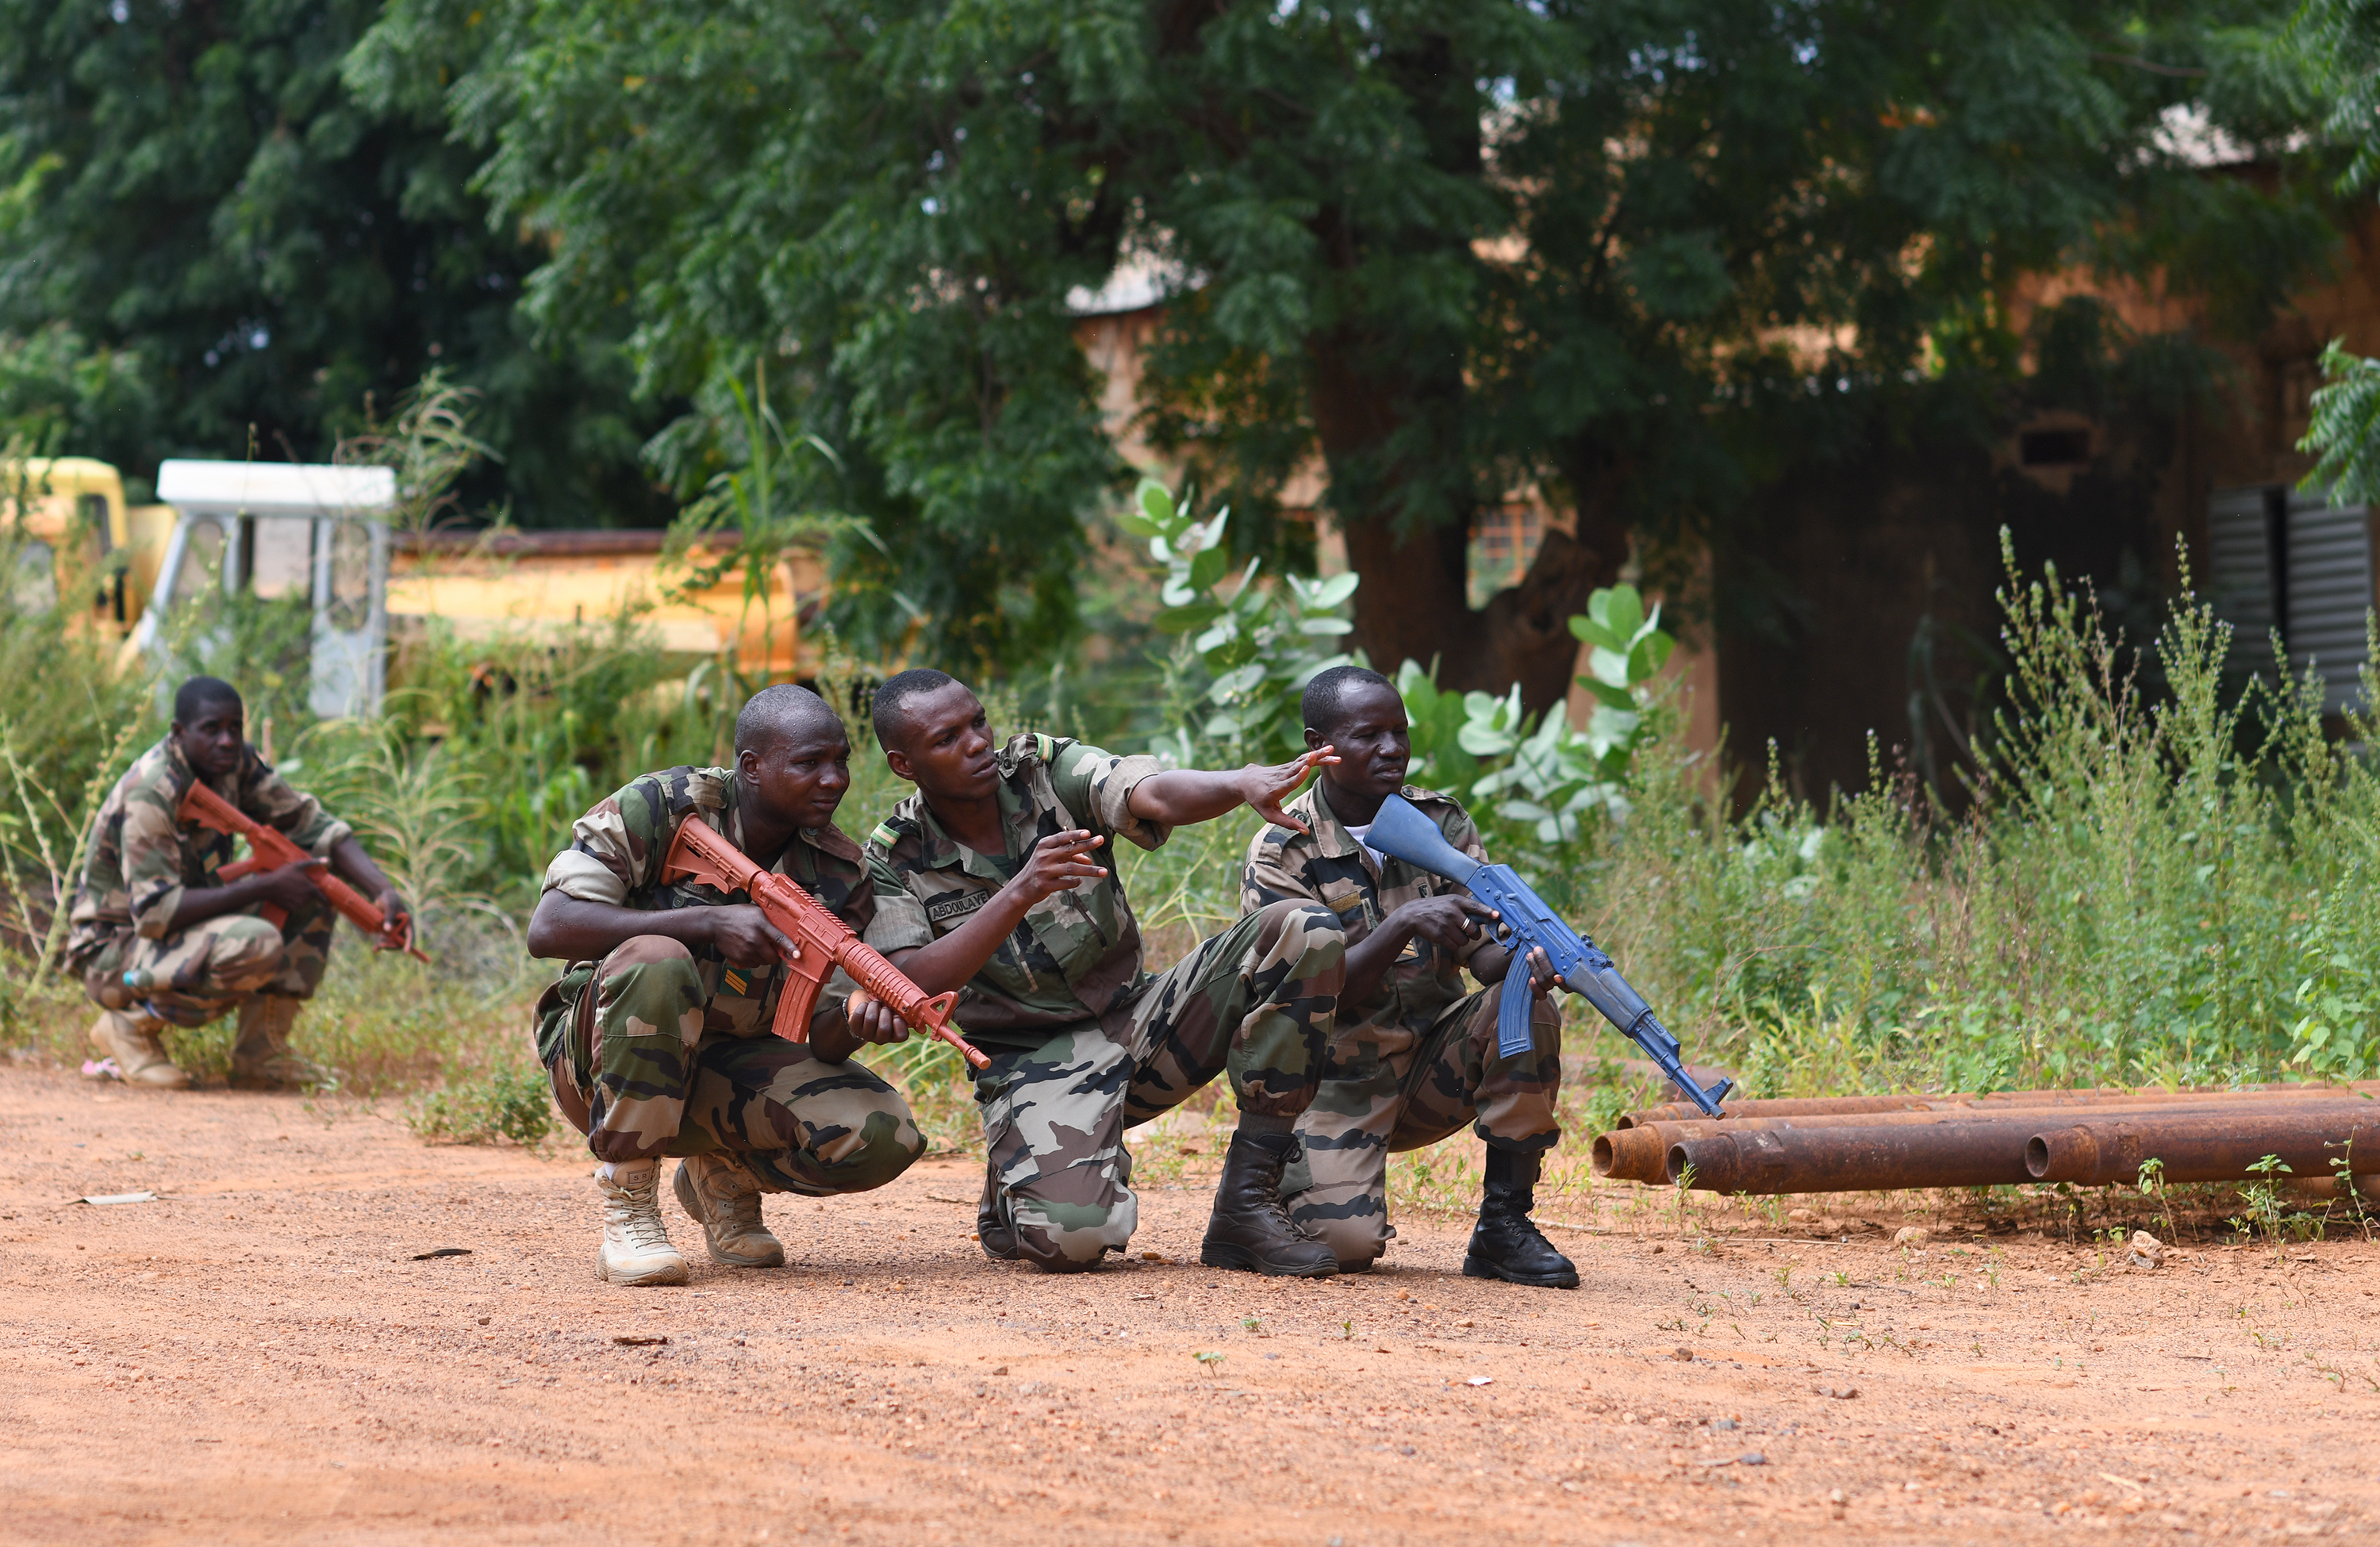 Forces Armées Nigeriennes (Nigerien Armed Forces) Genie Unit members confer about a simulated threat during an Improvised Explosive Device Awareness Course taught by members of the 768th Expeditionary Air Base Squadron Explosive Ordnance Disposal team and Security Forces Air Advisors in Niamey, Niger, Oct. 11, 2019. The course is part of a curriculum spanning several months designed to improve the FAN's effectiveness and survivability once they deploy to combat the violent extremist organizations in West Africa. (U.S. Air Force photo by Staff Sgt. Alex Fox Echols III)